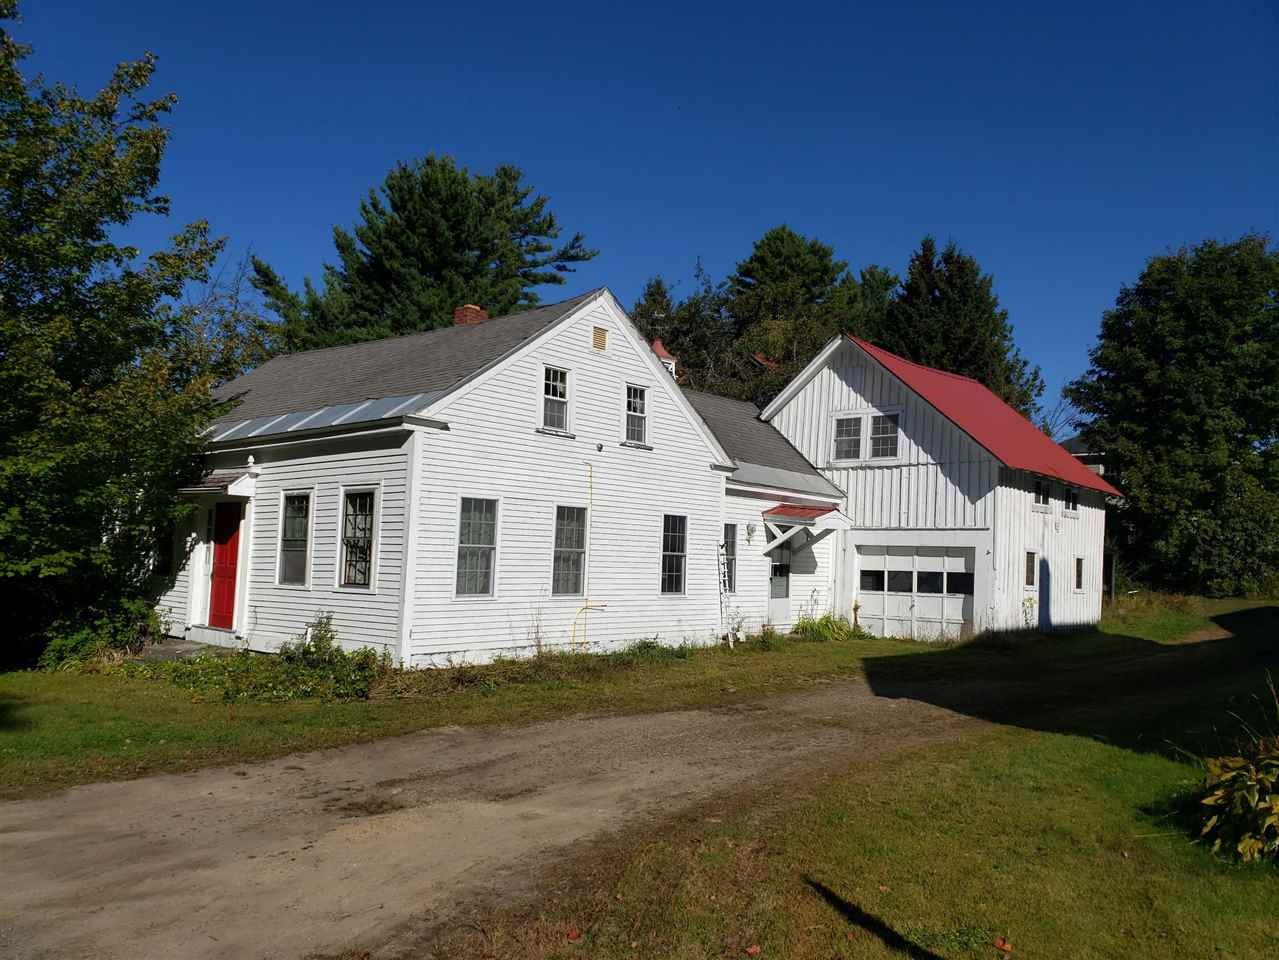 MLS 4777468: 1024 123 North Route, Stoddard NH